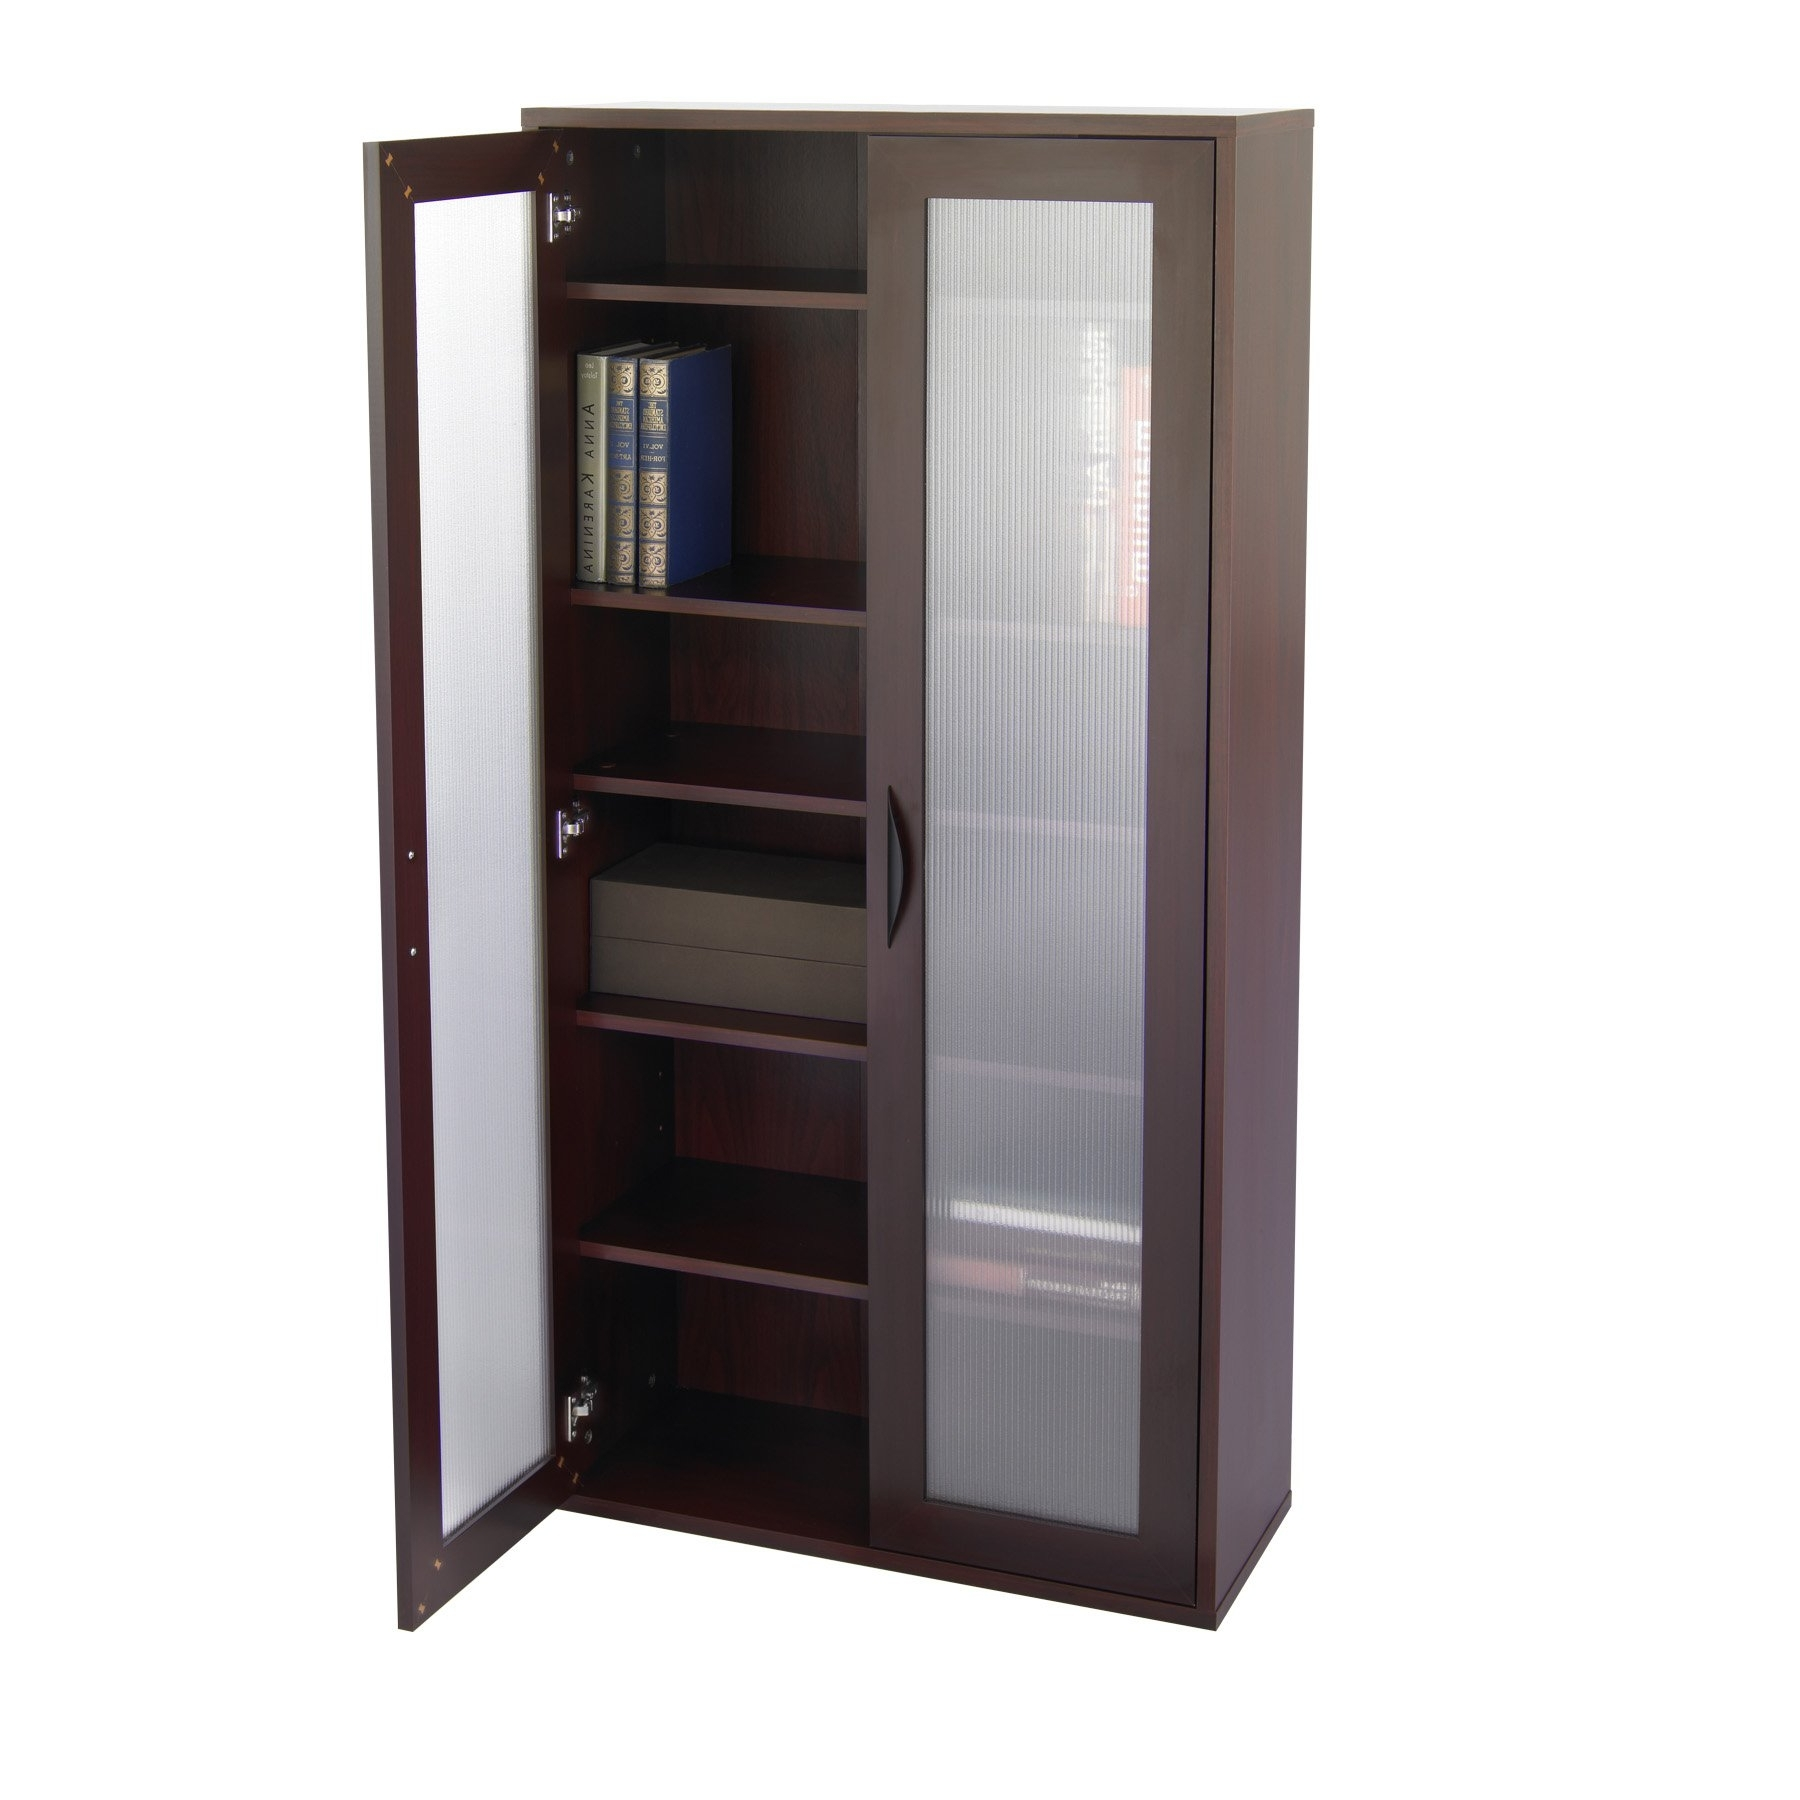 Storage Bookcase With Glass Doors Tall – Mahogany – Walmart With Regard To 2017 Bookcases With Glass Doors (View 15 of 15)